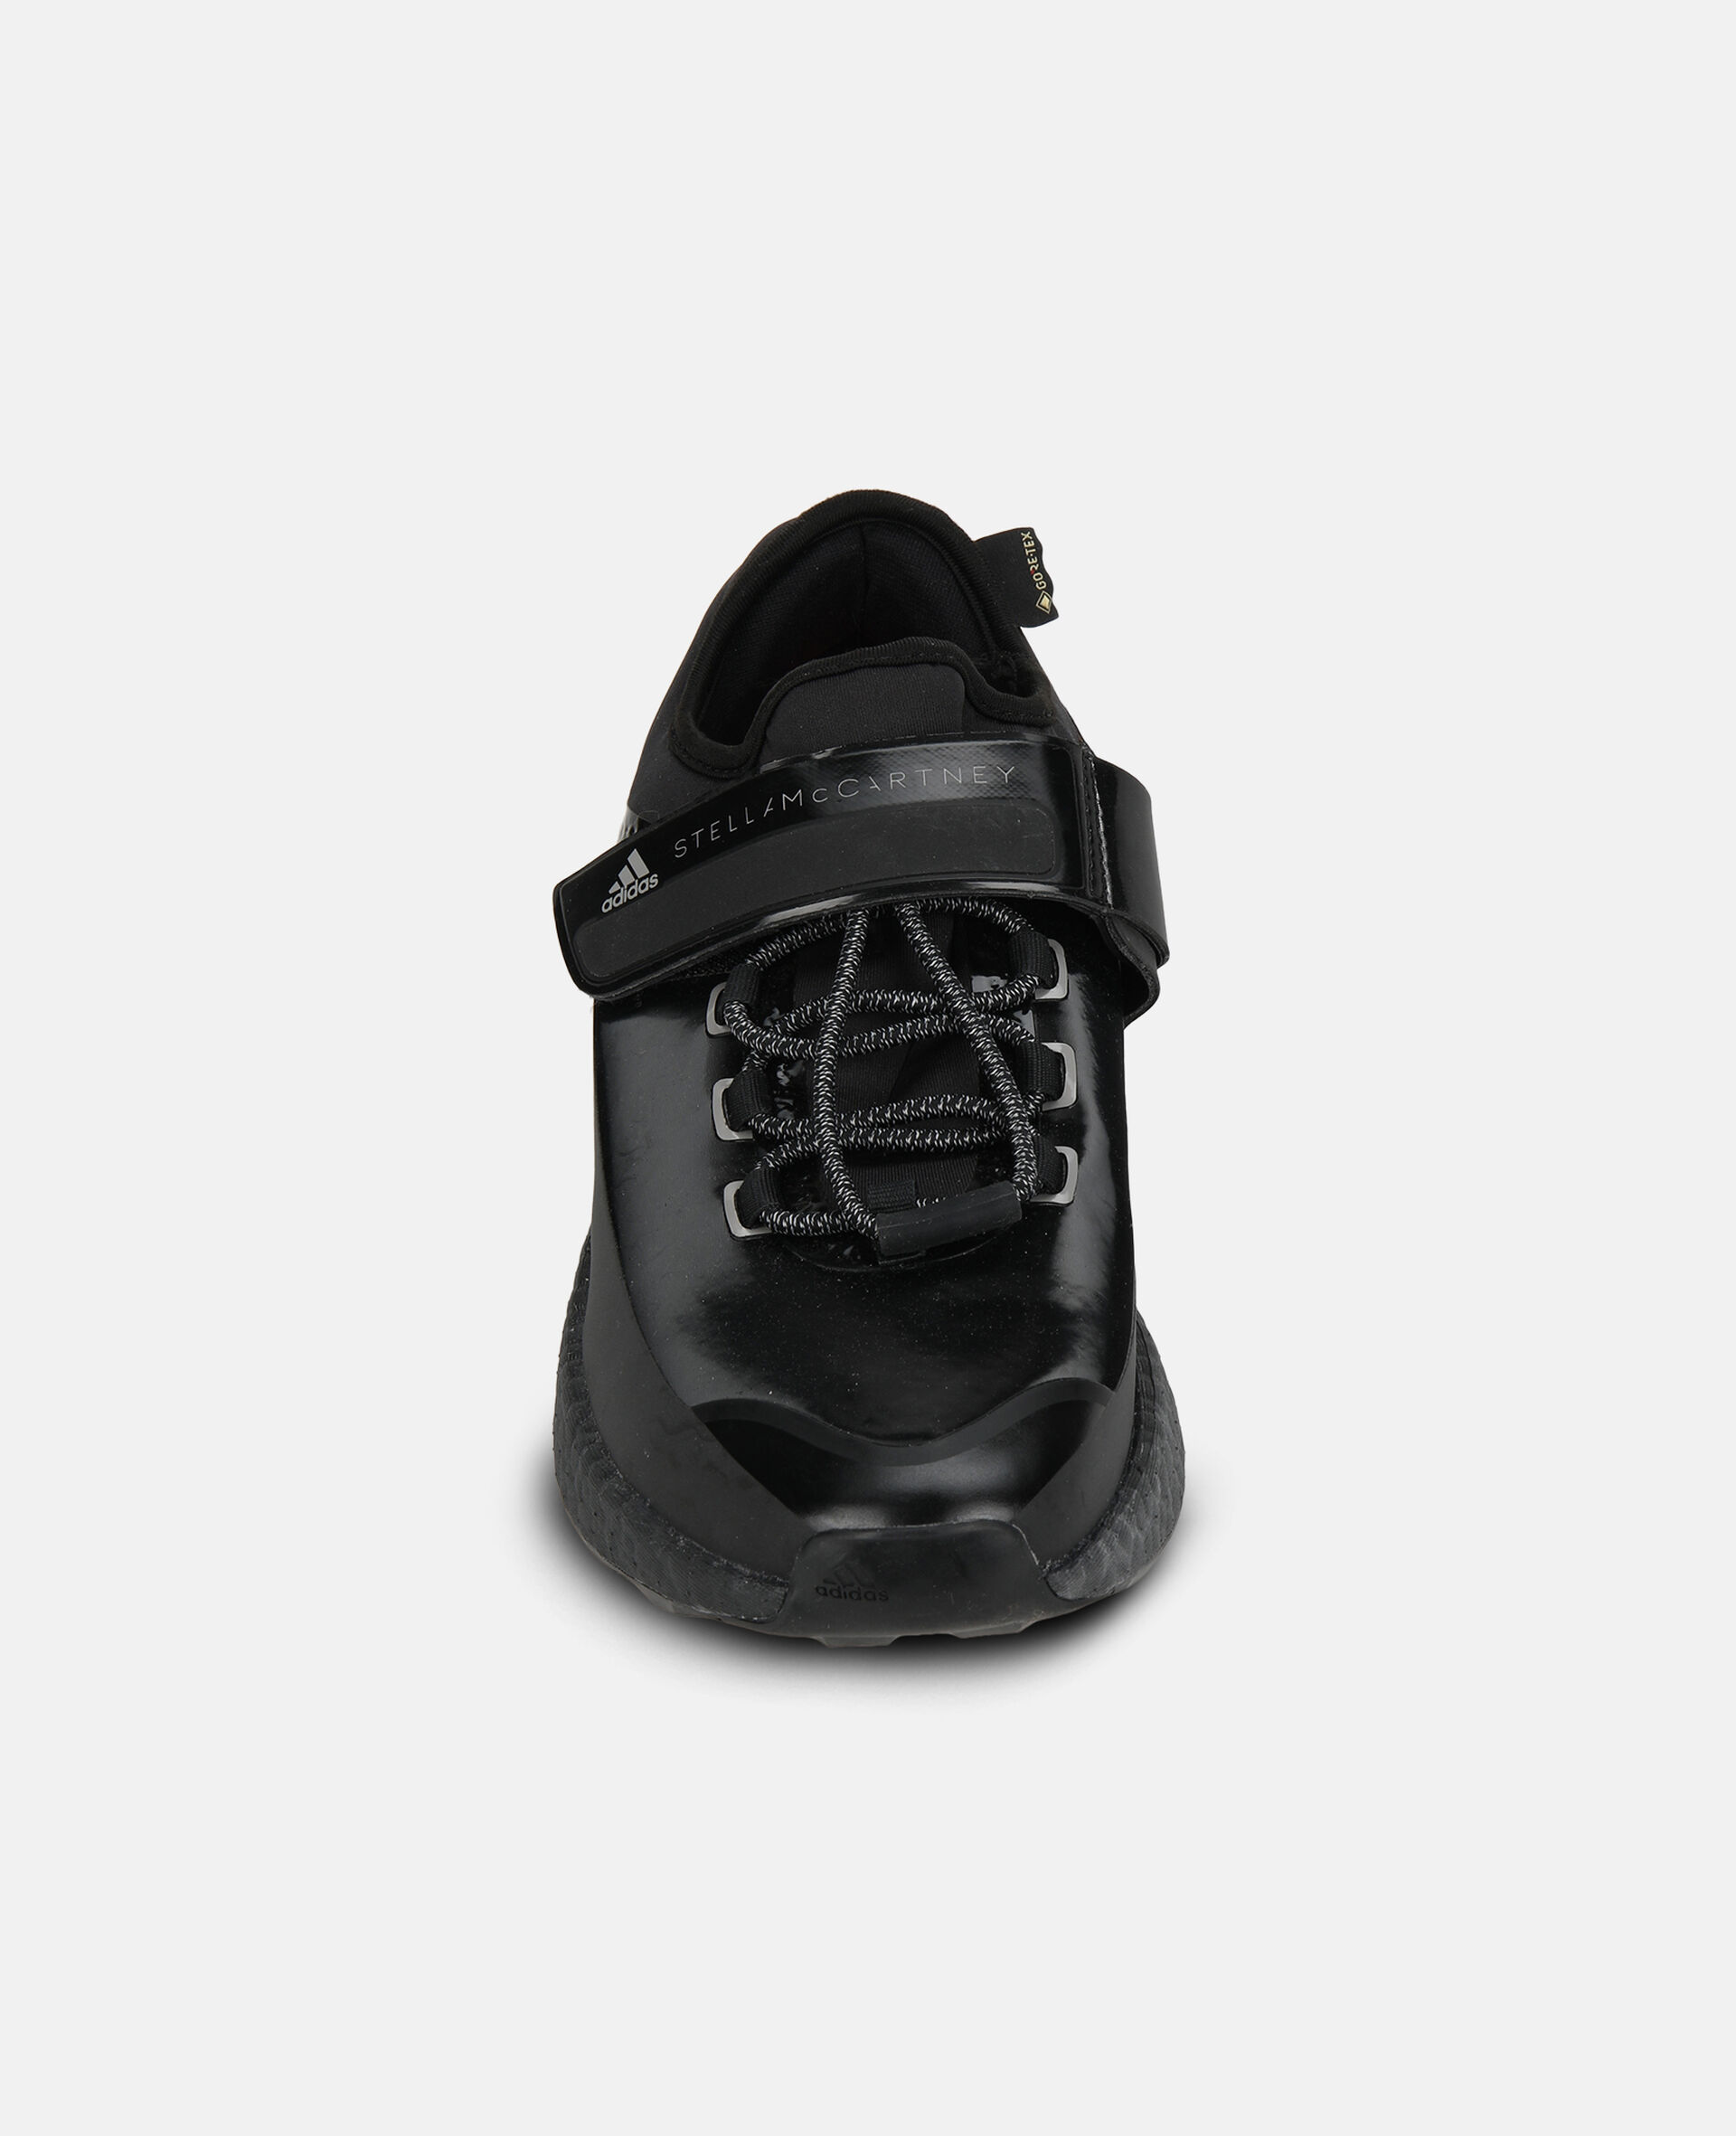 Black Outdoor Boost rain.rdy Trainers -Black-large image number 2